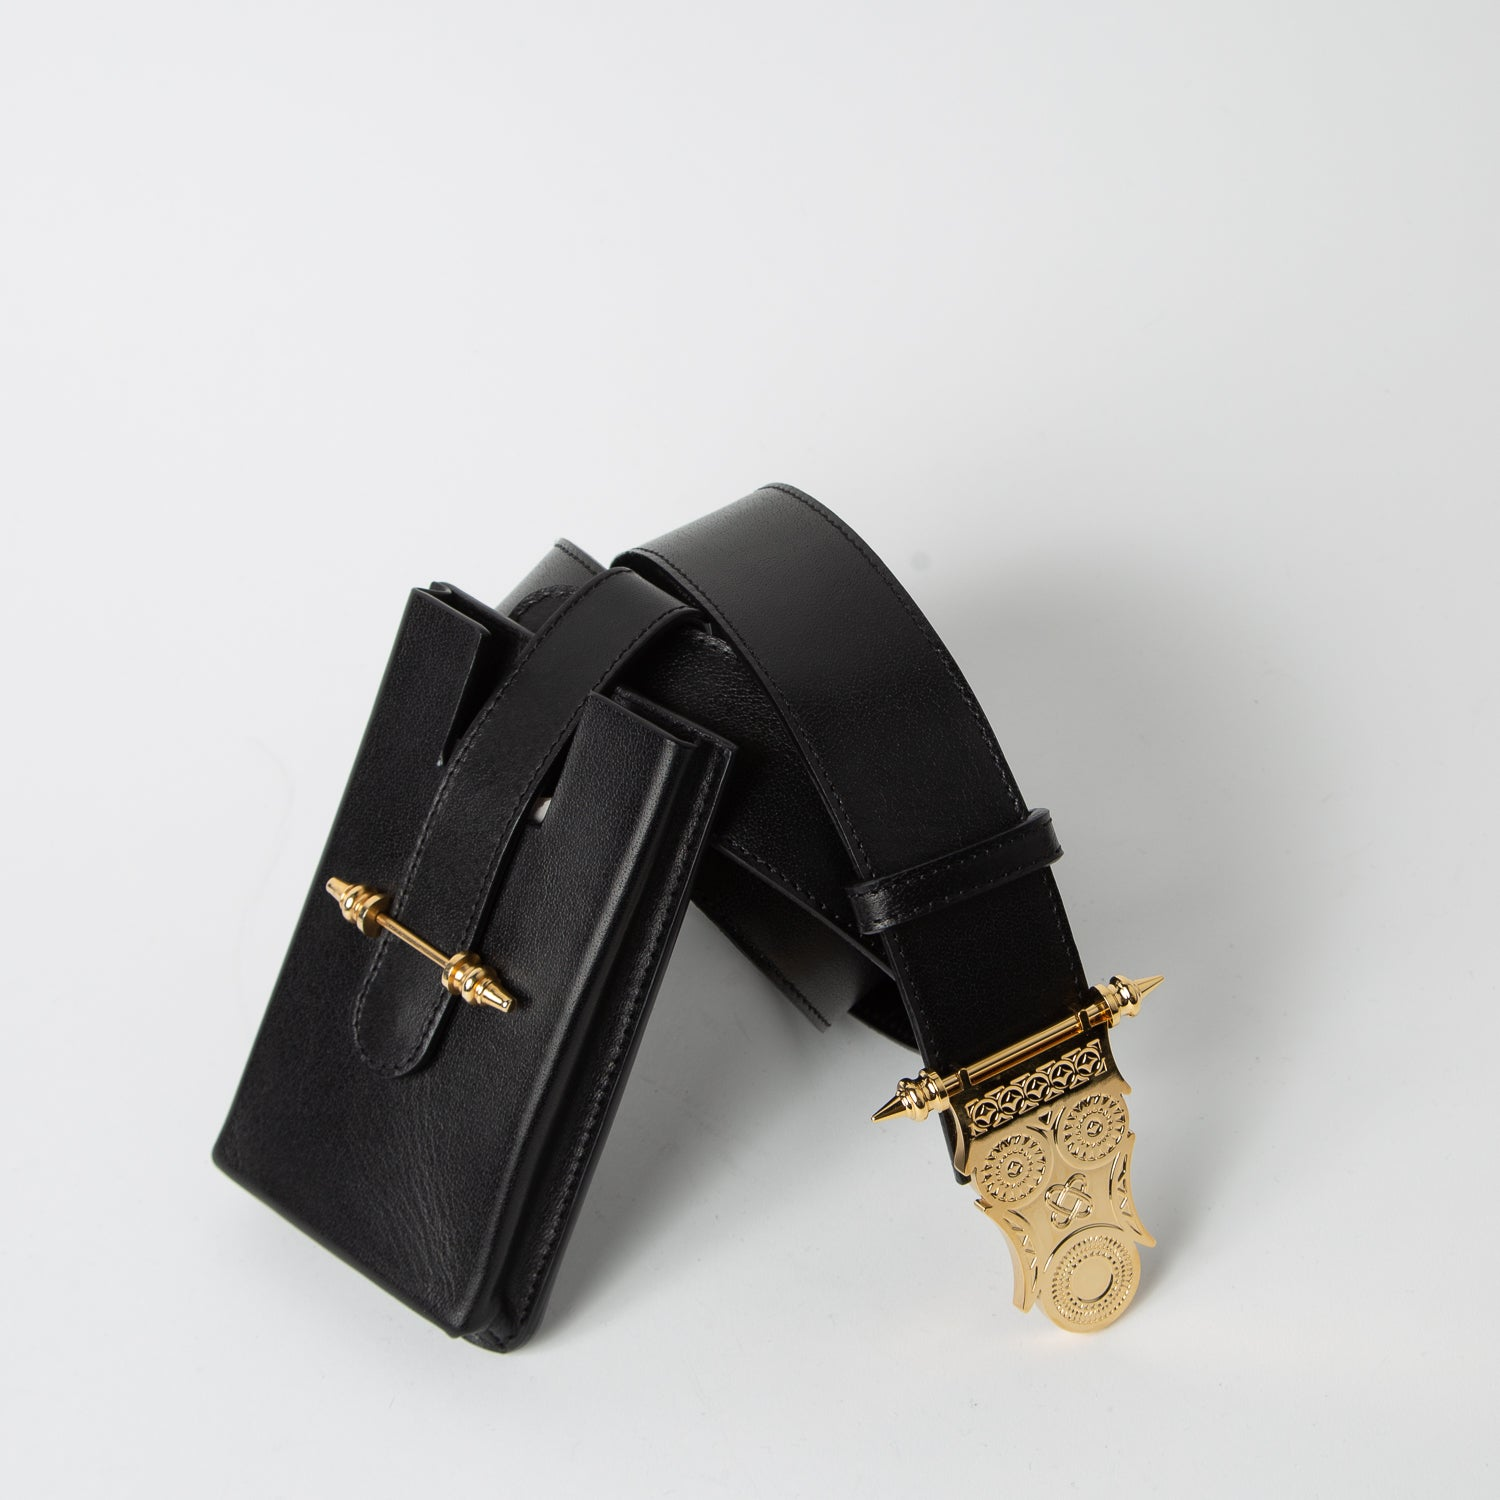 Black belt bag in leather with detachable pocket by Okhtein at Secret Location